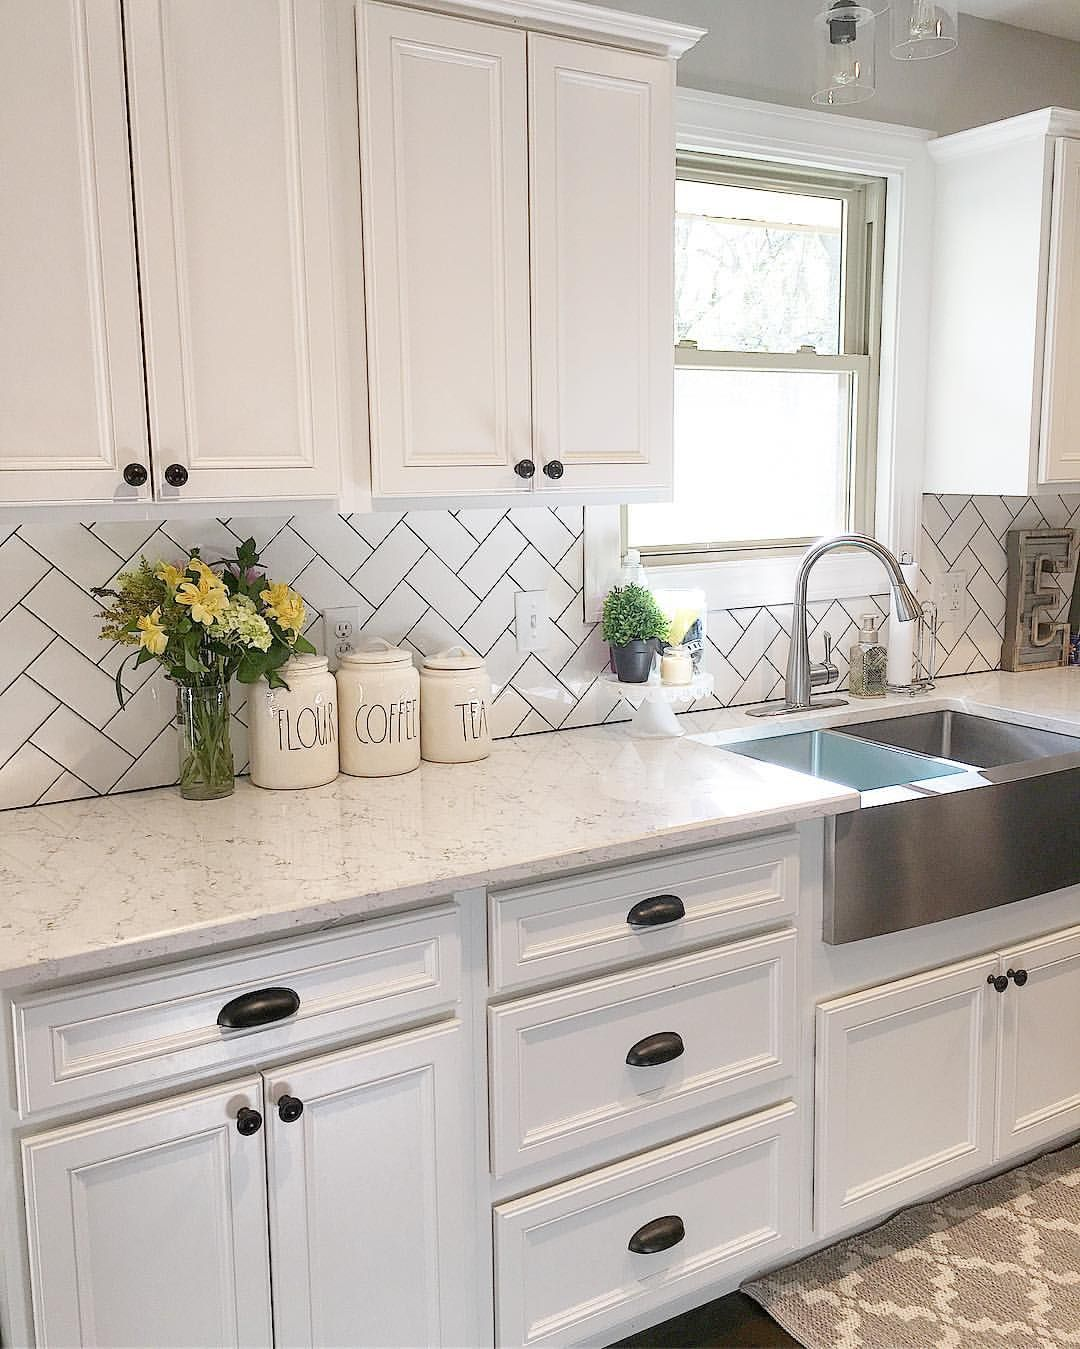 Farmhouse Kitchen Cabinets Decorating Walls 5 Tips On Buying Sink House Decor Sinks Also Known As Apron Front Have A Practical Past Their Deep Basins Allow For Plenty Of Dishwashing And Overhanging Fronts